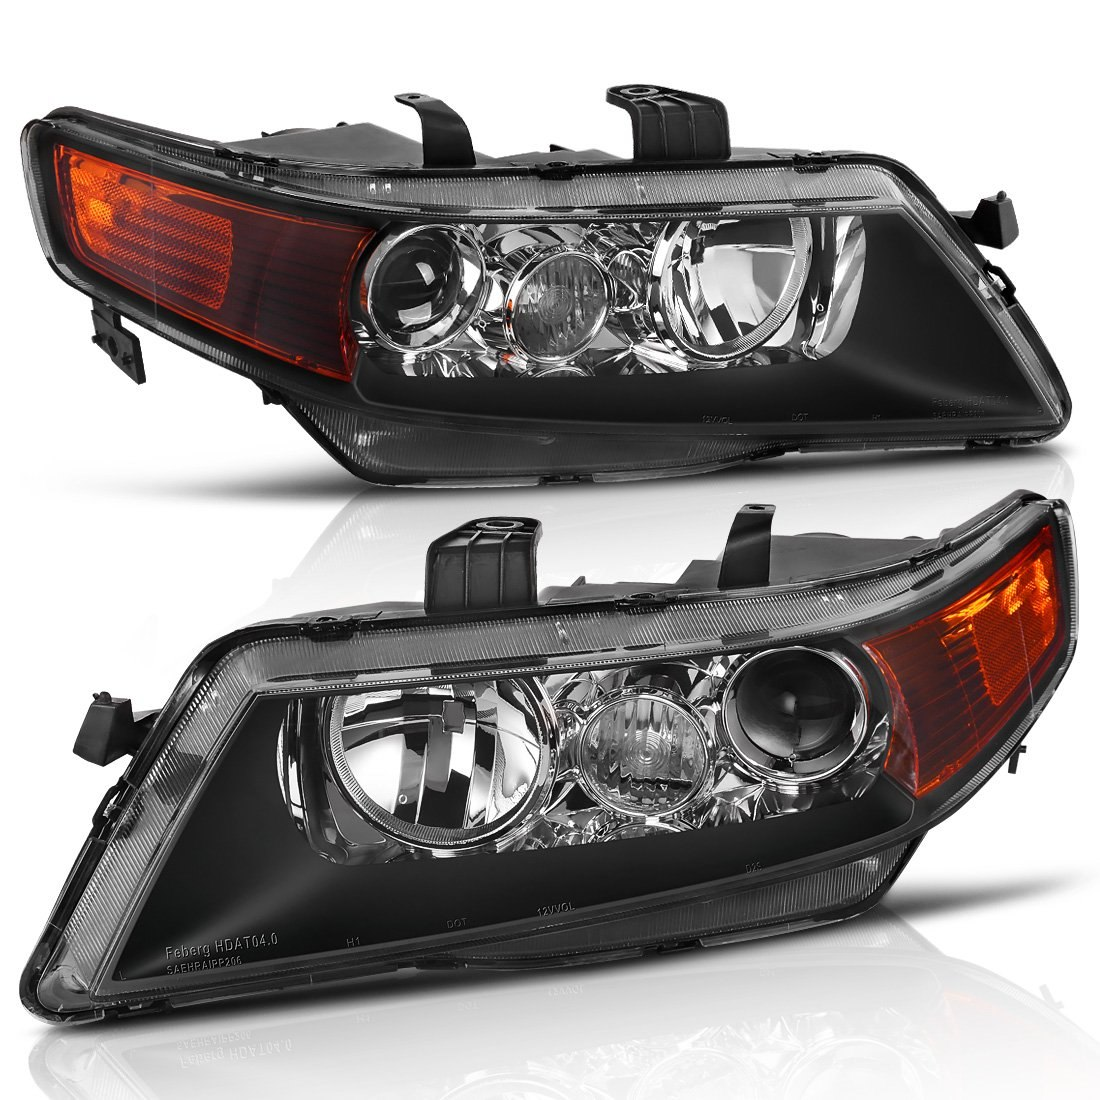 Projector Headlight Assembly For 2004 2005 Acura TSX With